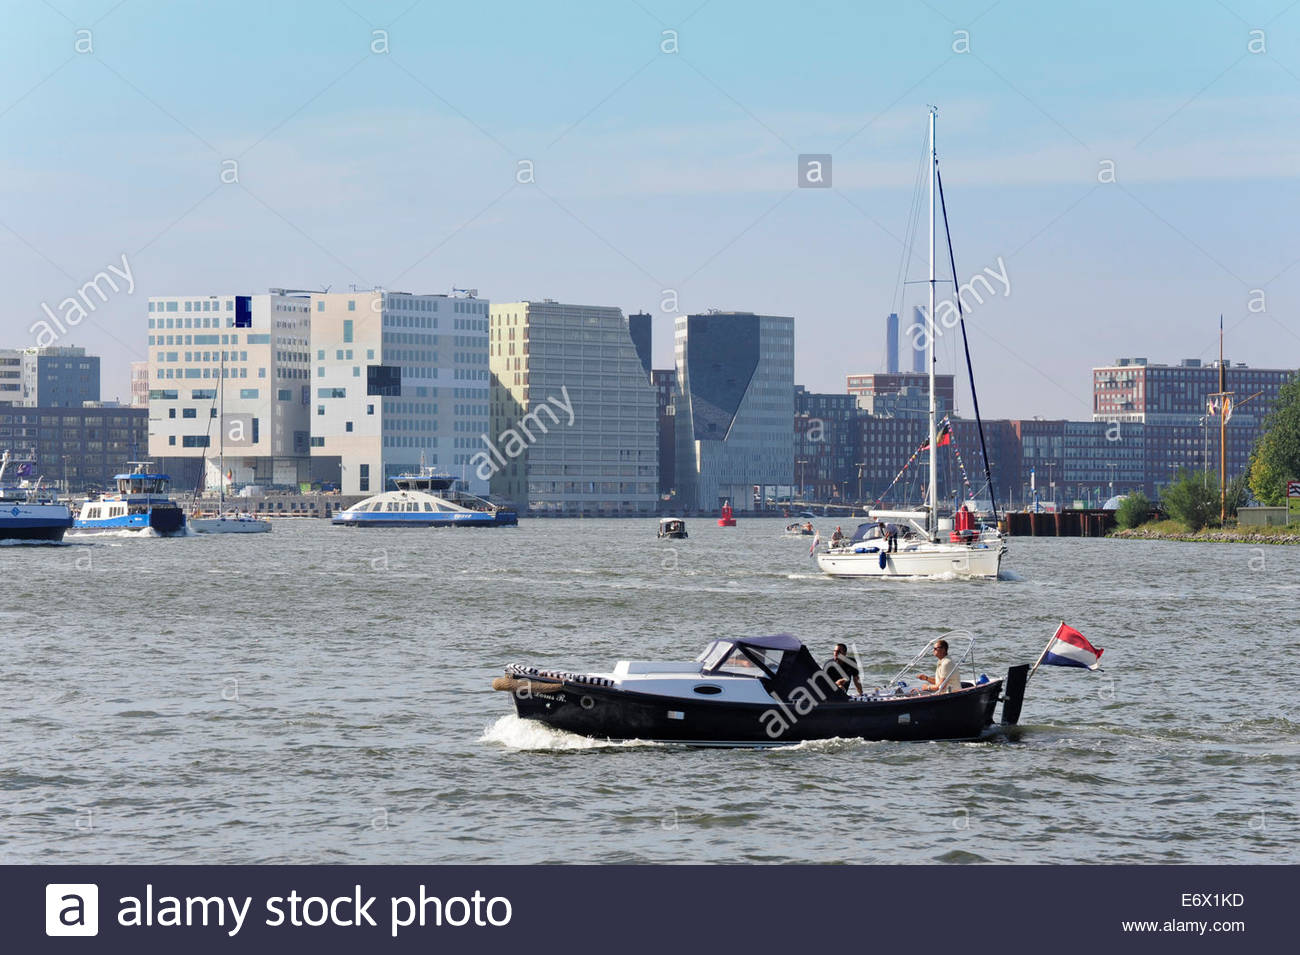 Boats on the IJ lake, at back modern architecture, IJdock and Westerdok, Amsterdam, Holland, the Netherlands - Stock Image